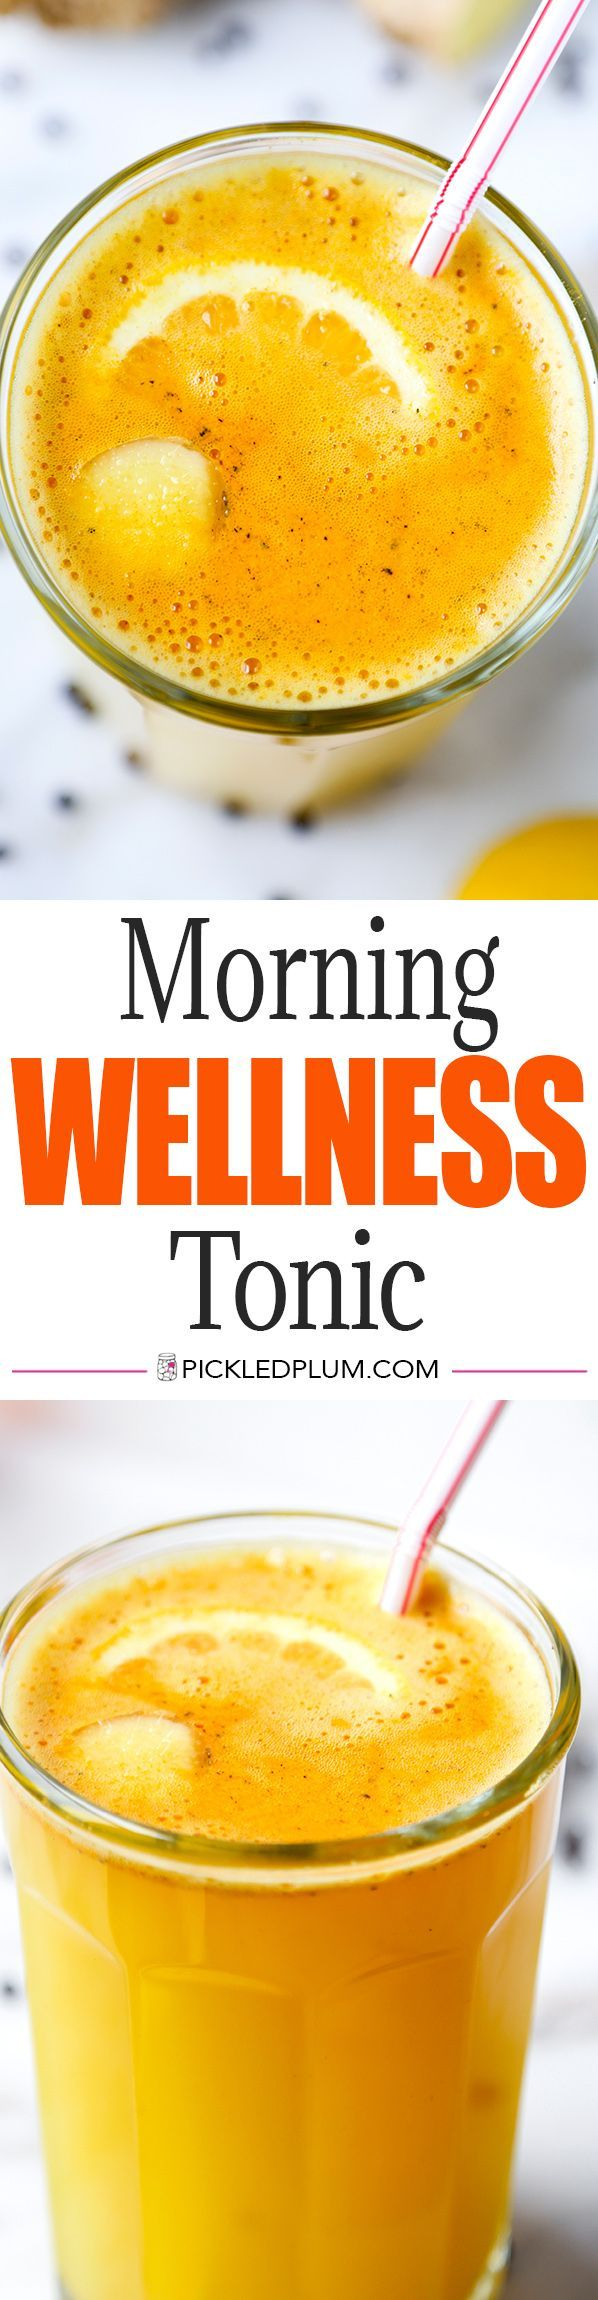 Morning Wellness Tonic - Add a little zing to your morning with this spicy, cleansing and invigorating wellness tonic! Healthy, drink, recipe, turmeric, coconut water   pickledplum.com